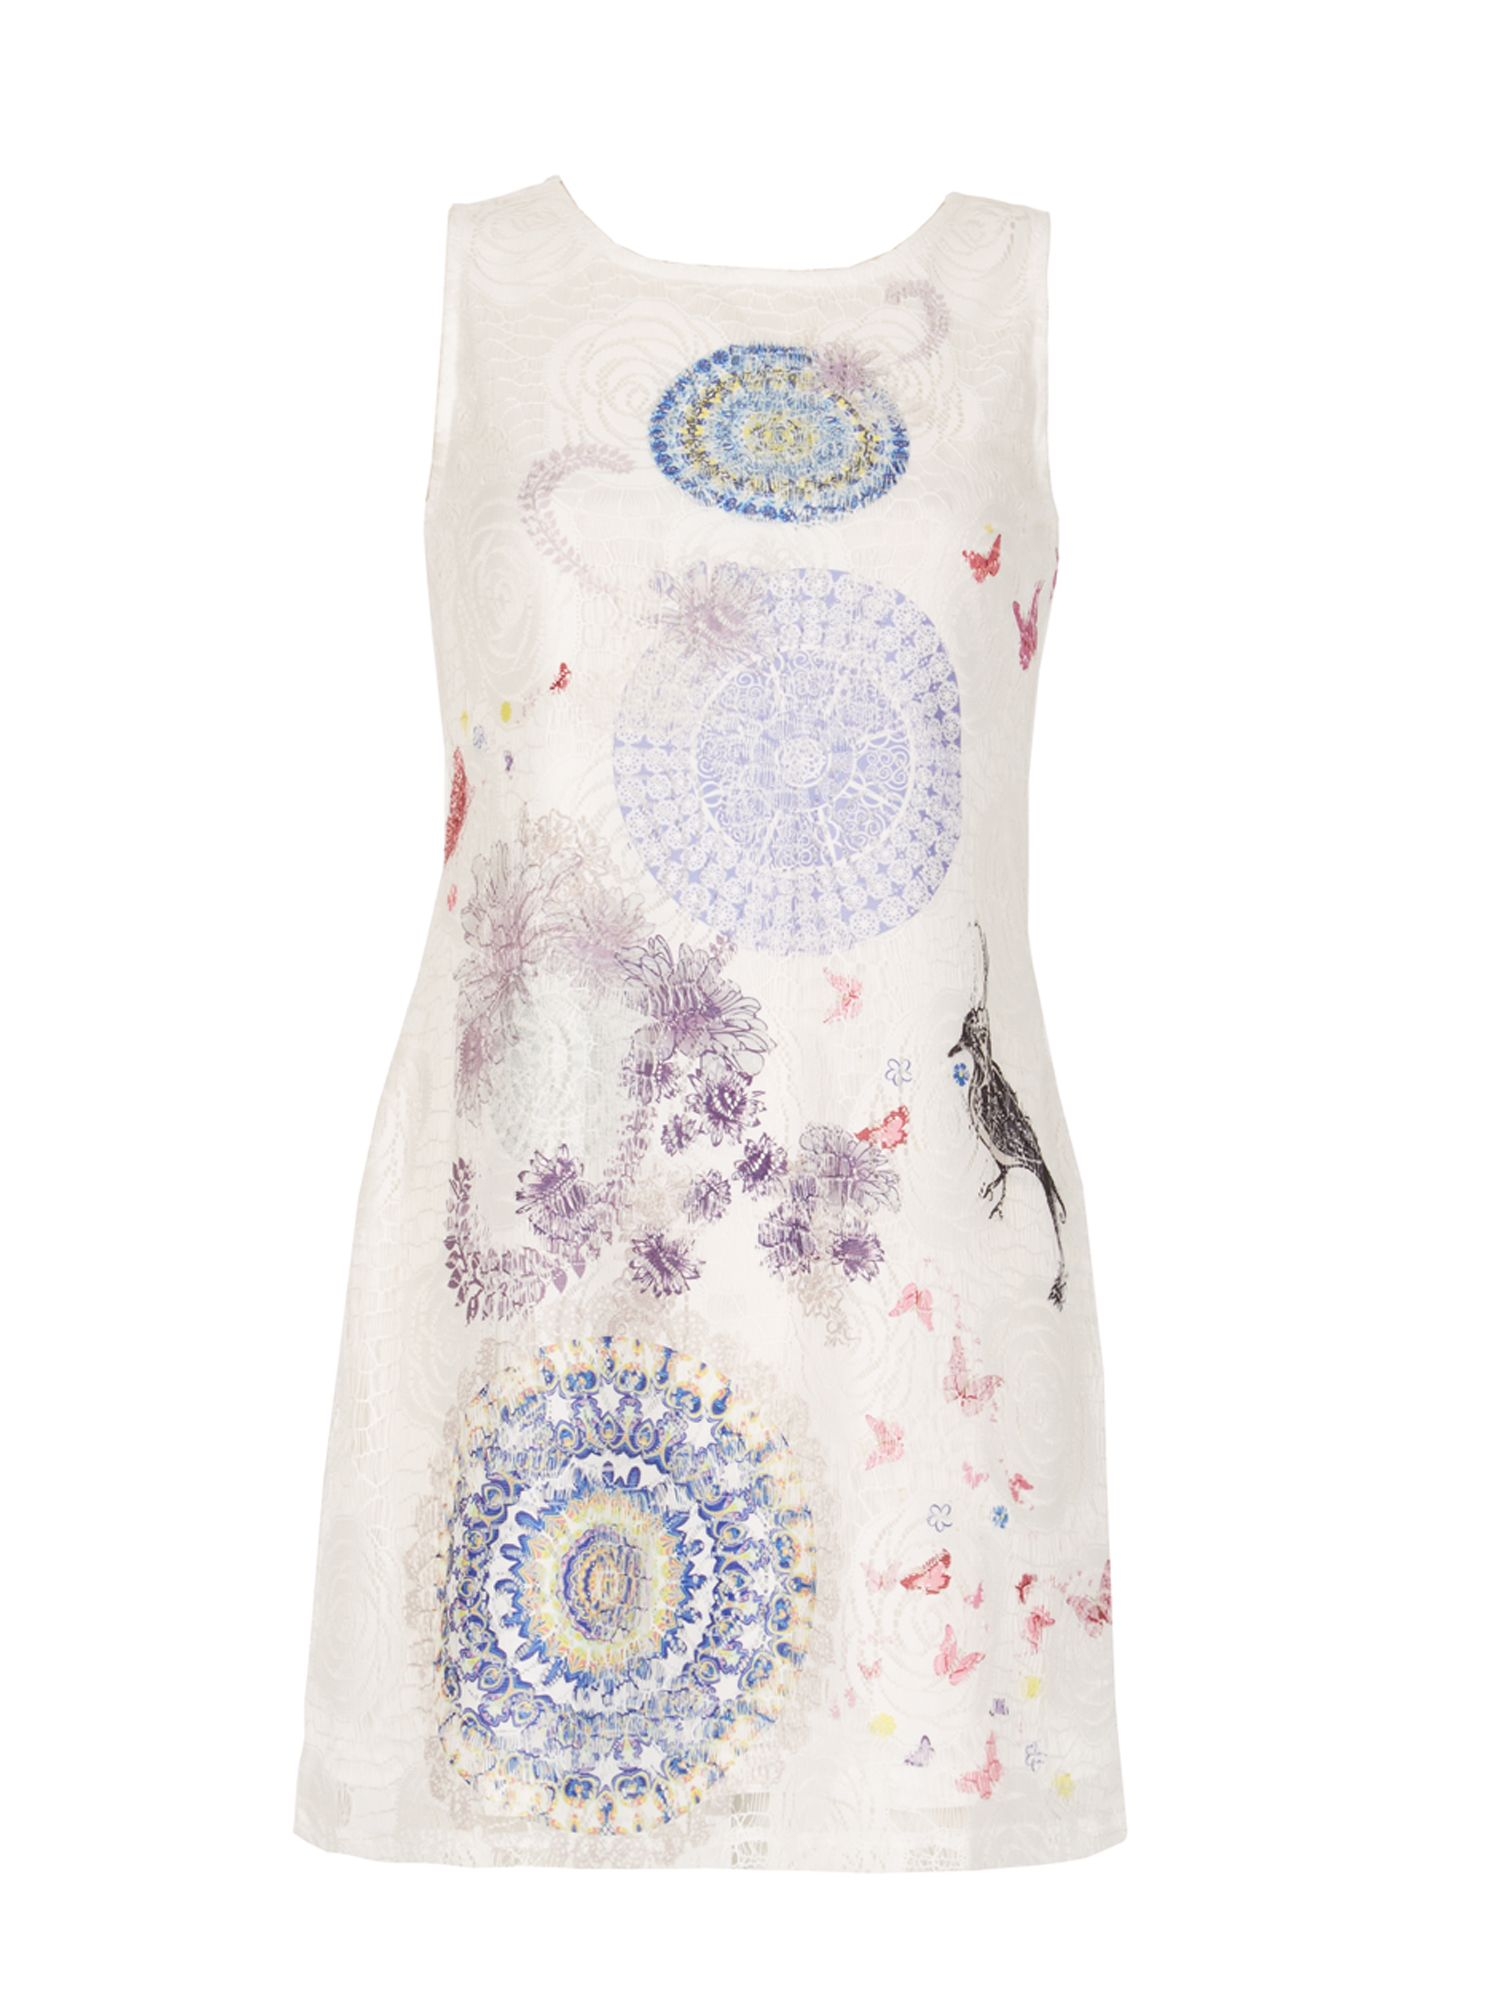 Izabel London Printed Lace Dress, White